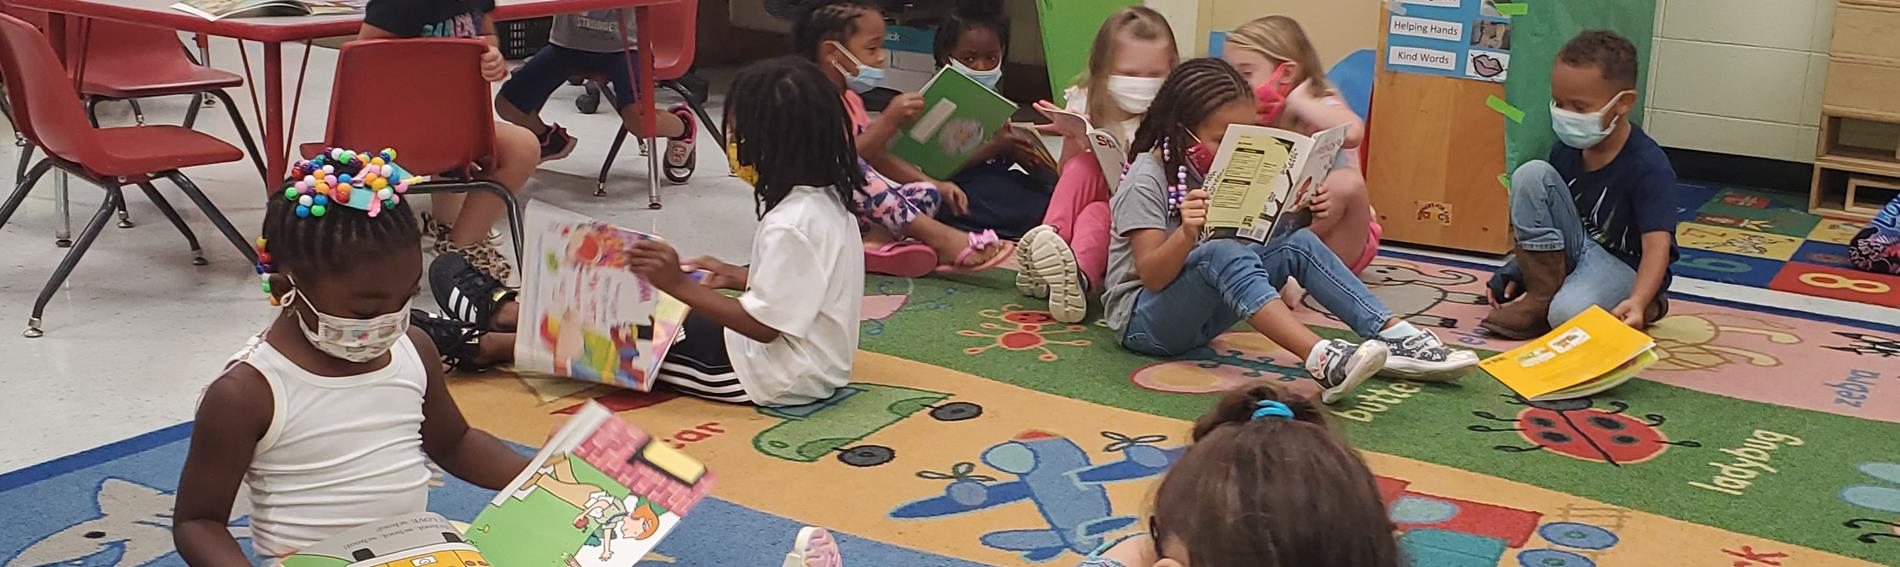 students reading on a classroom carpet